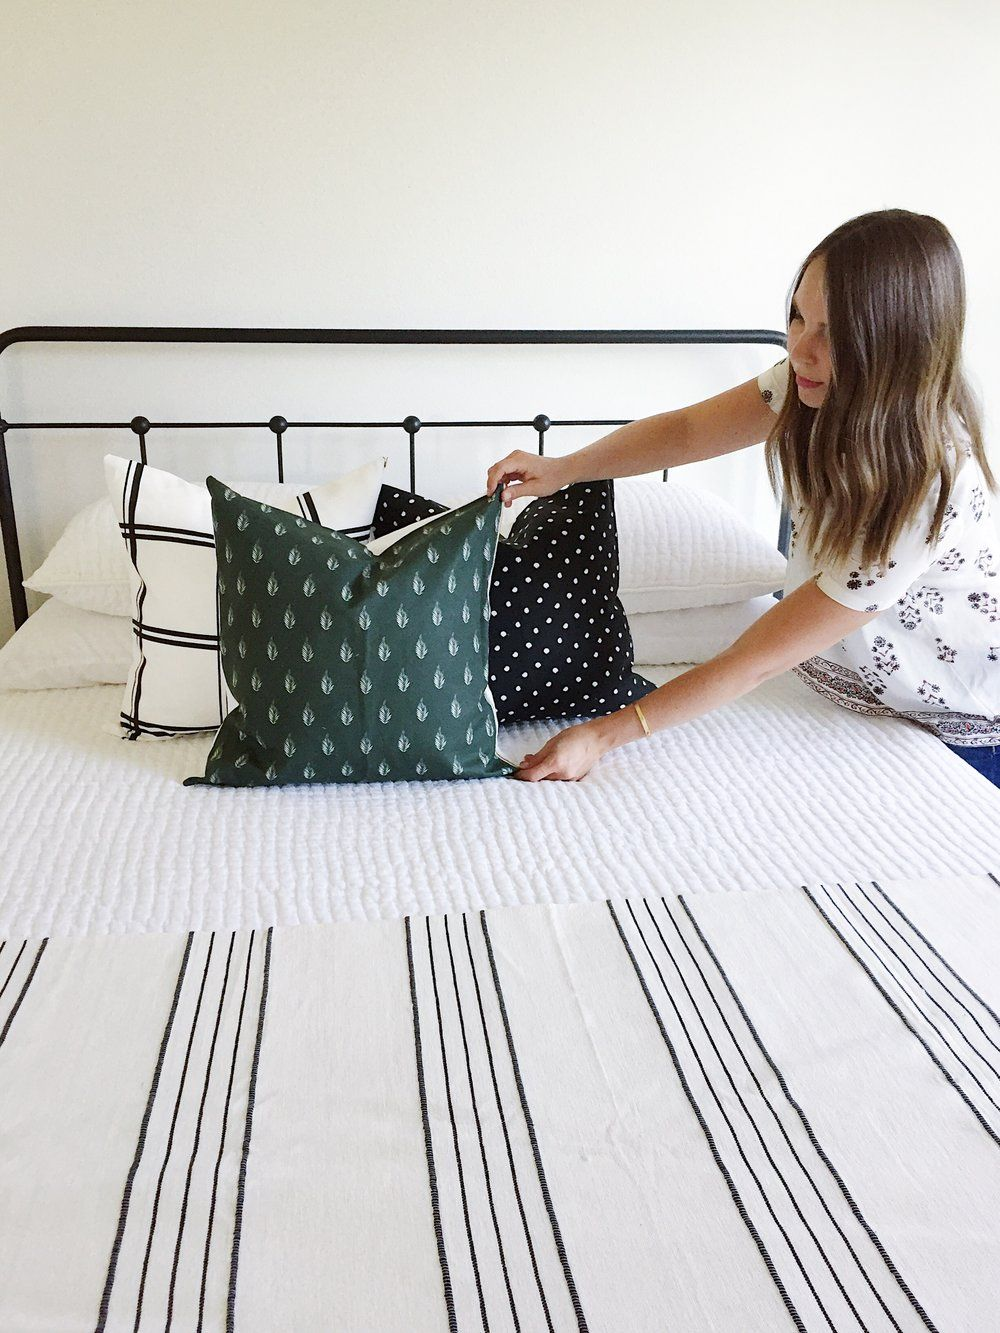 Design How To Making Your Bed Make Your Bed Bed Bed Photos